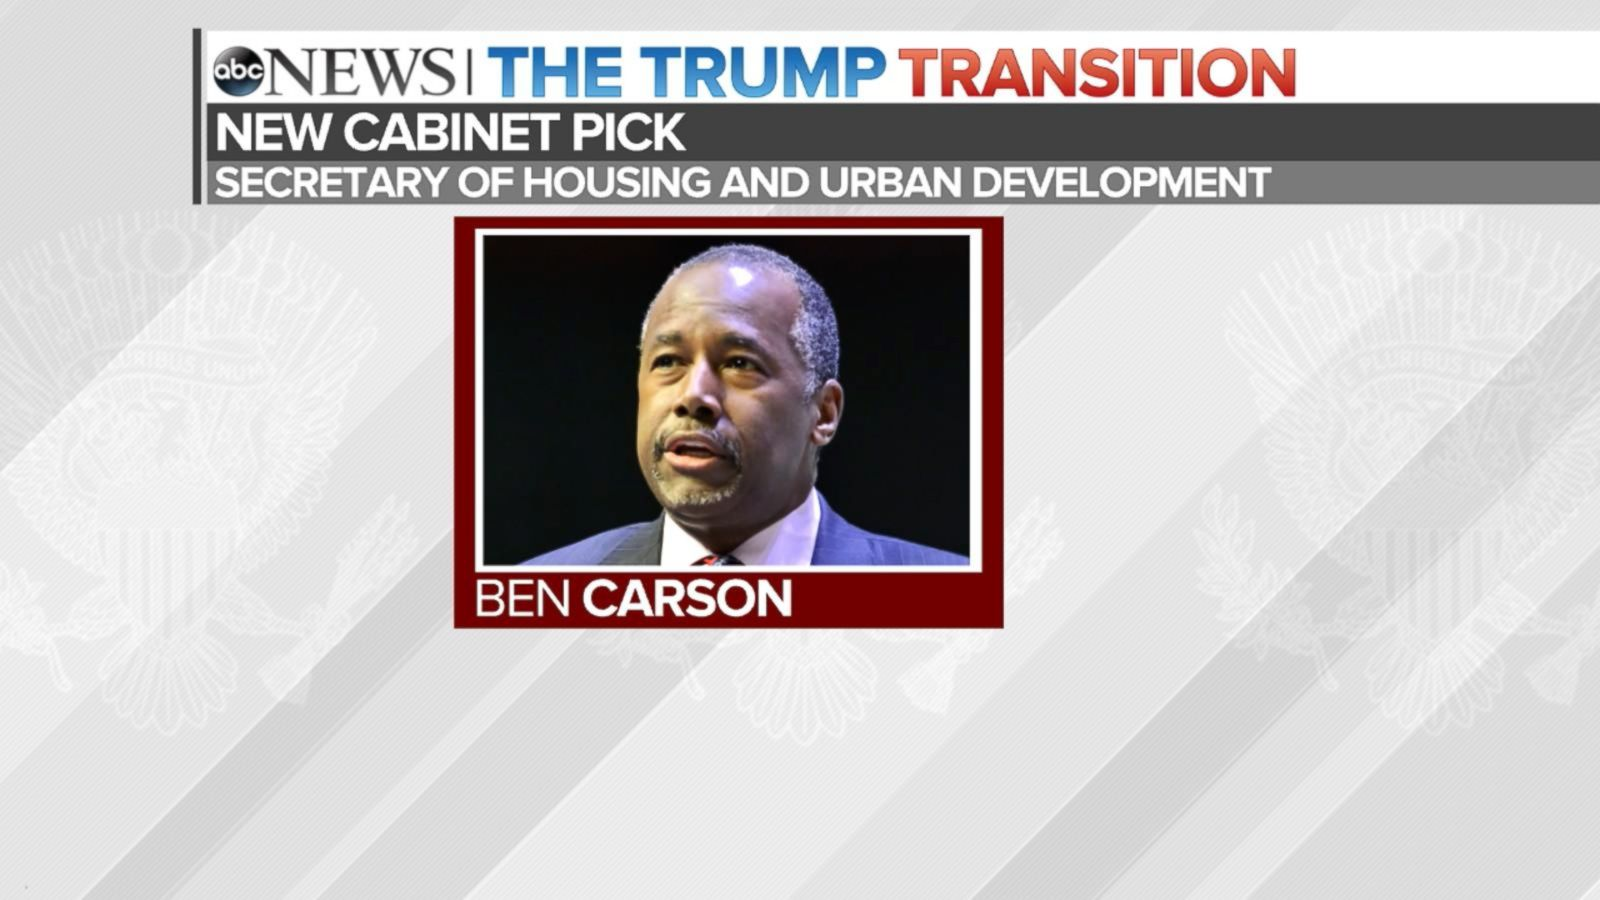 VIDEO: Donald Trump Nominates Ben Carson for Cabinet Position